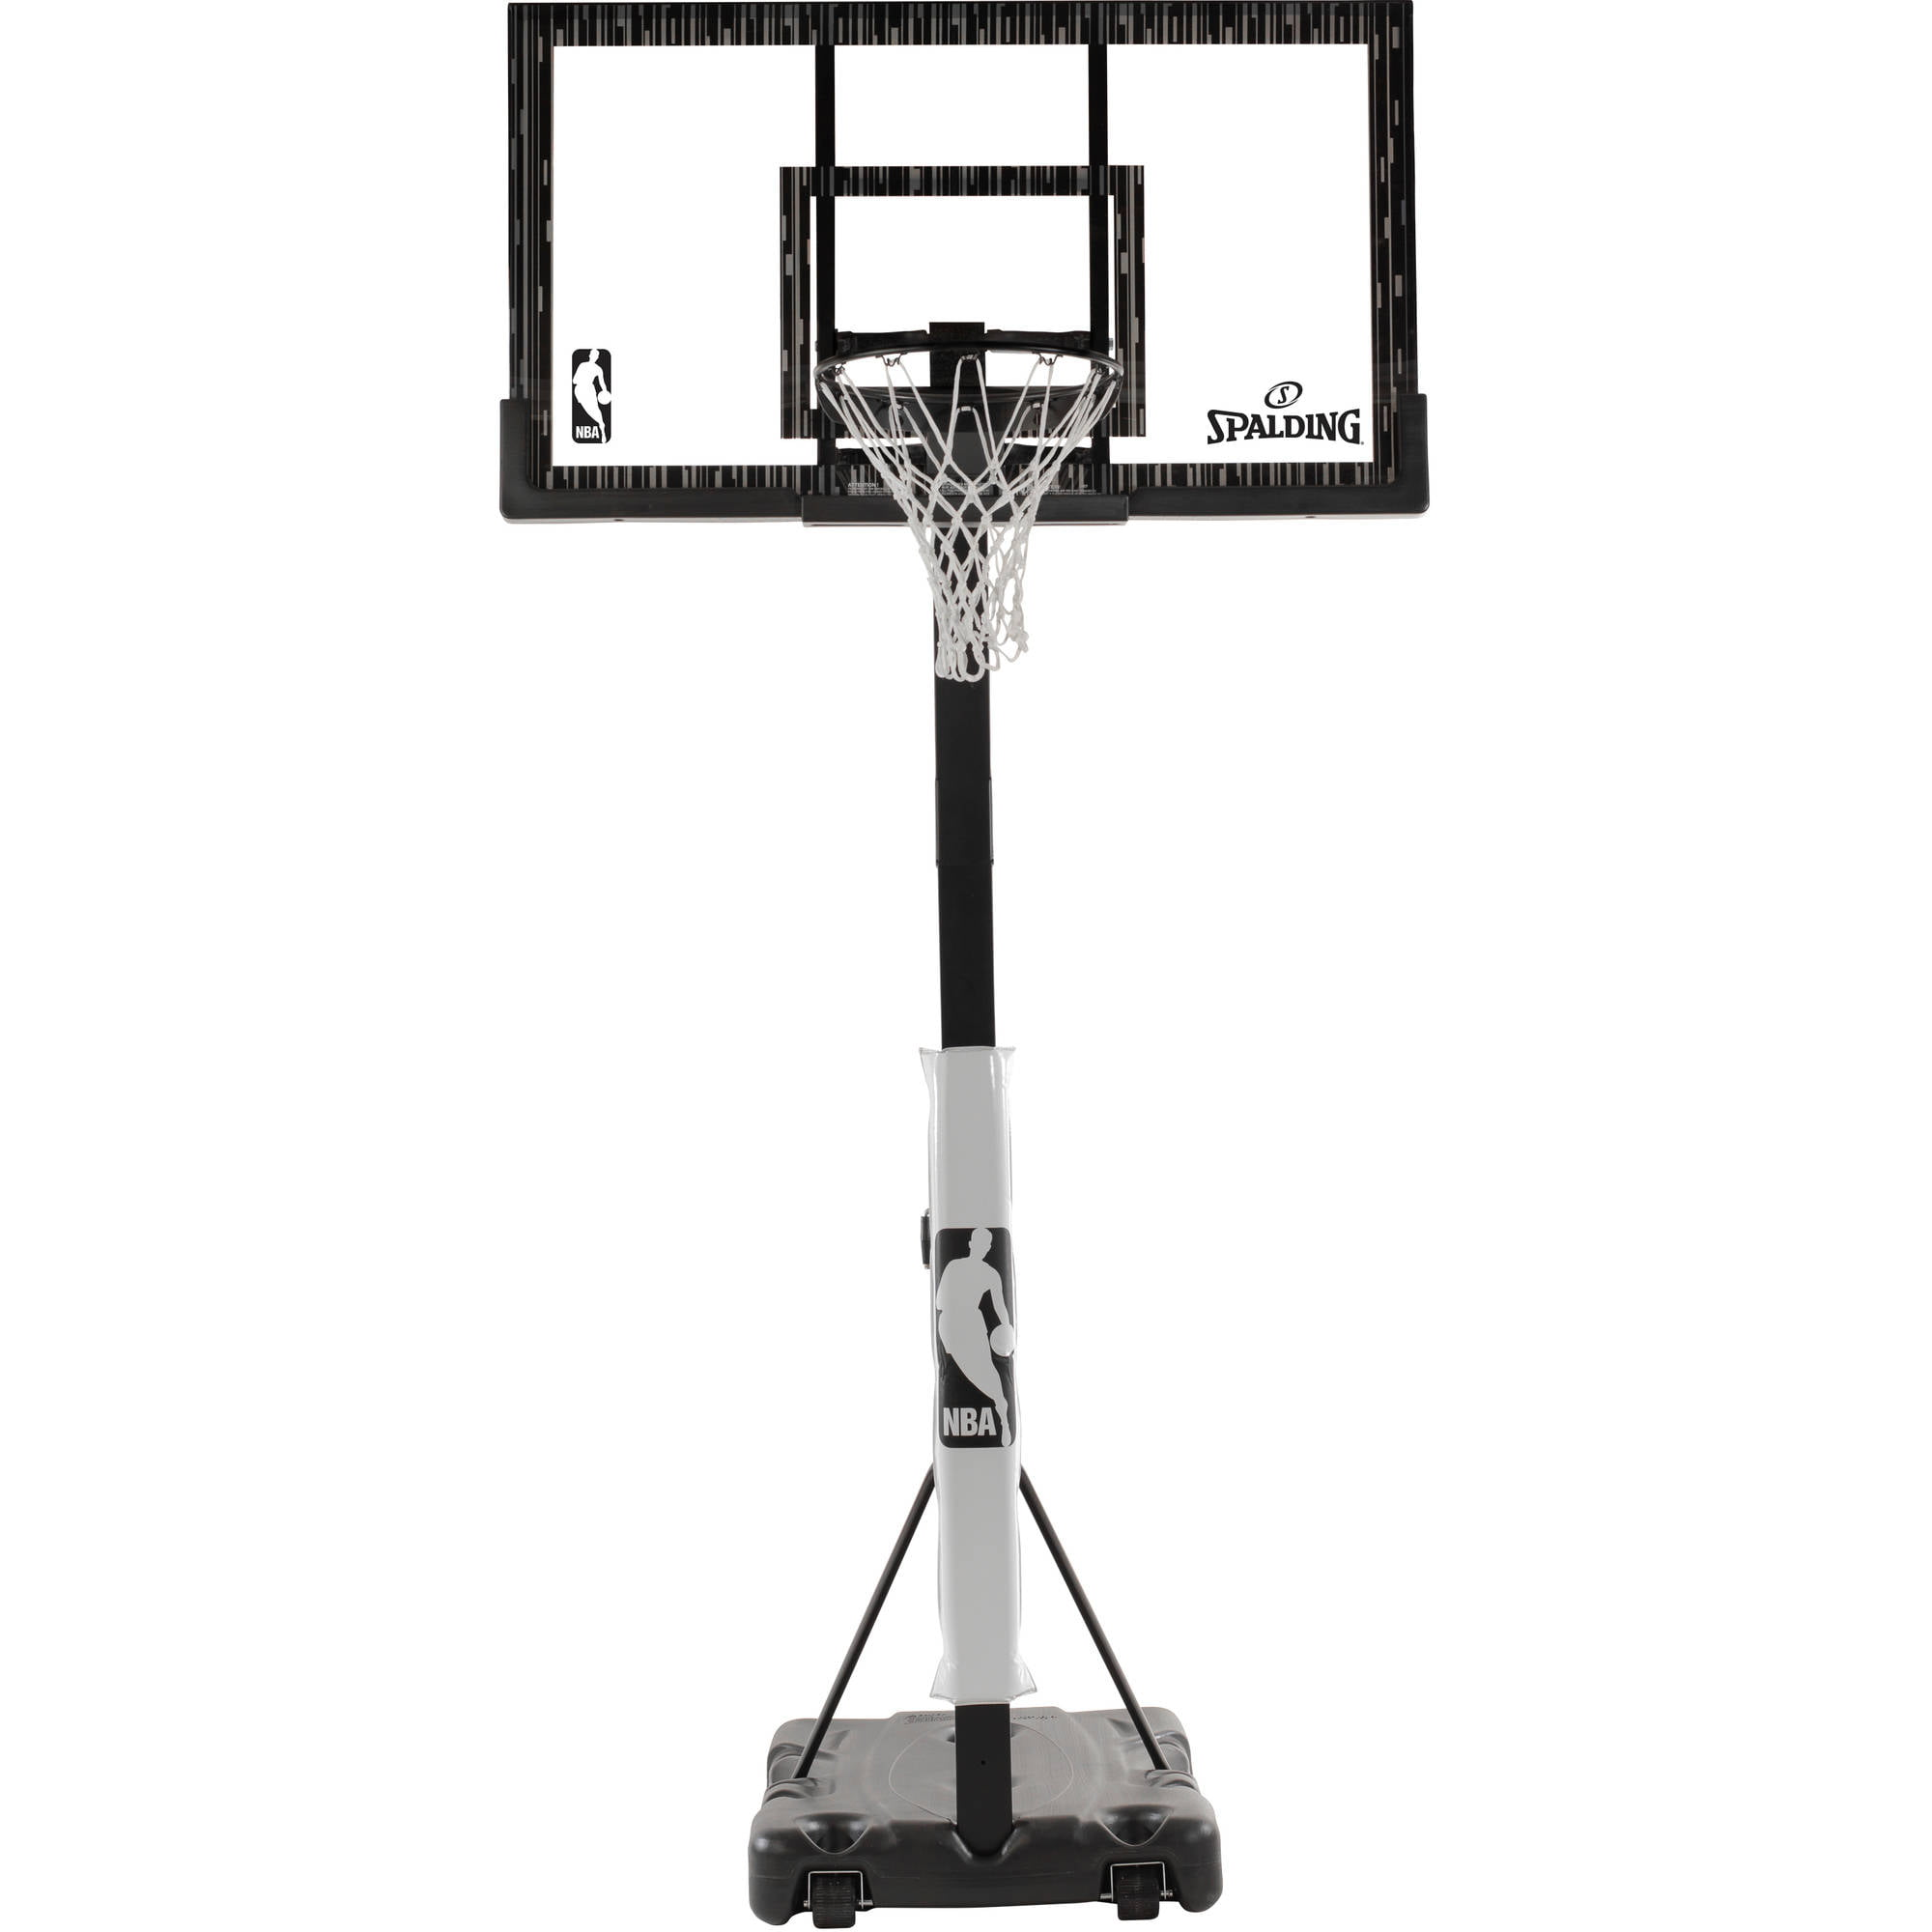 "Spalding NBA 60"" Acrylic Screw Jack Portable Hoop System by Spalding"